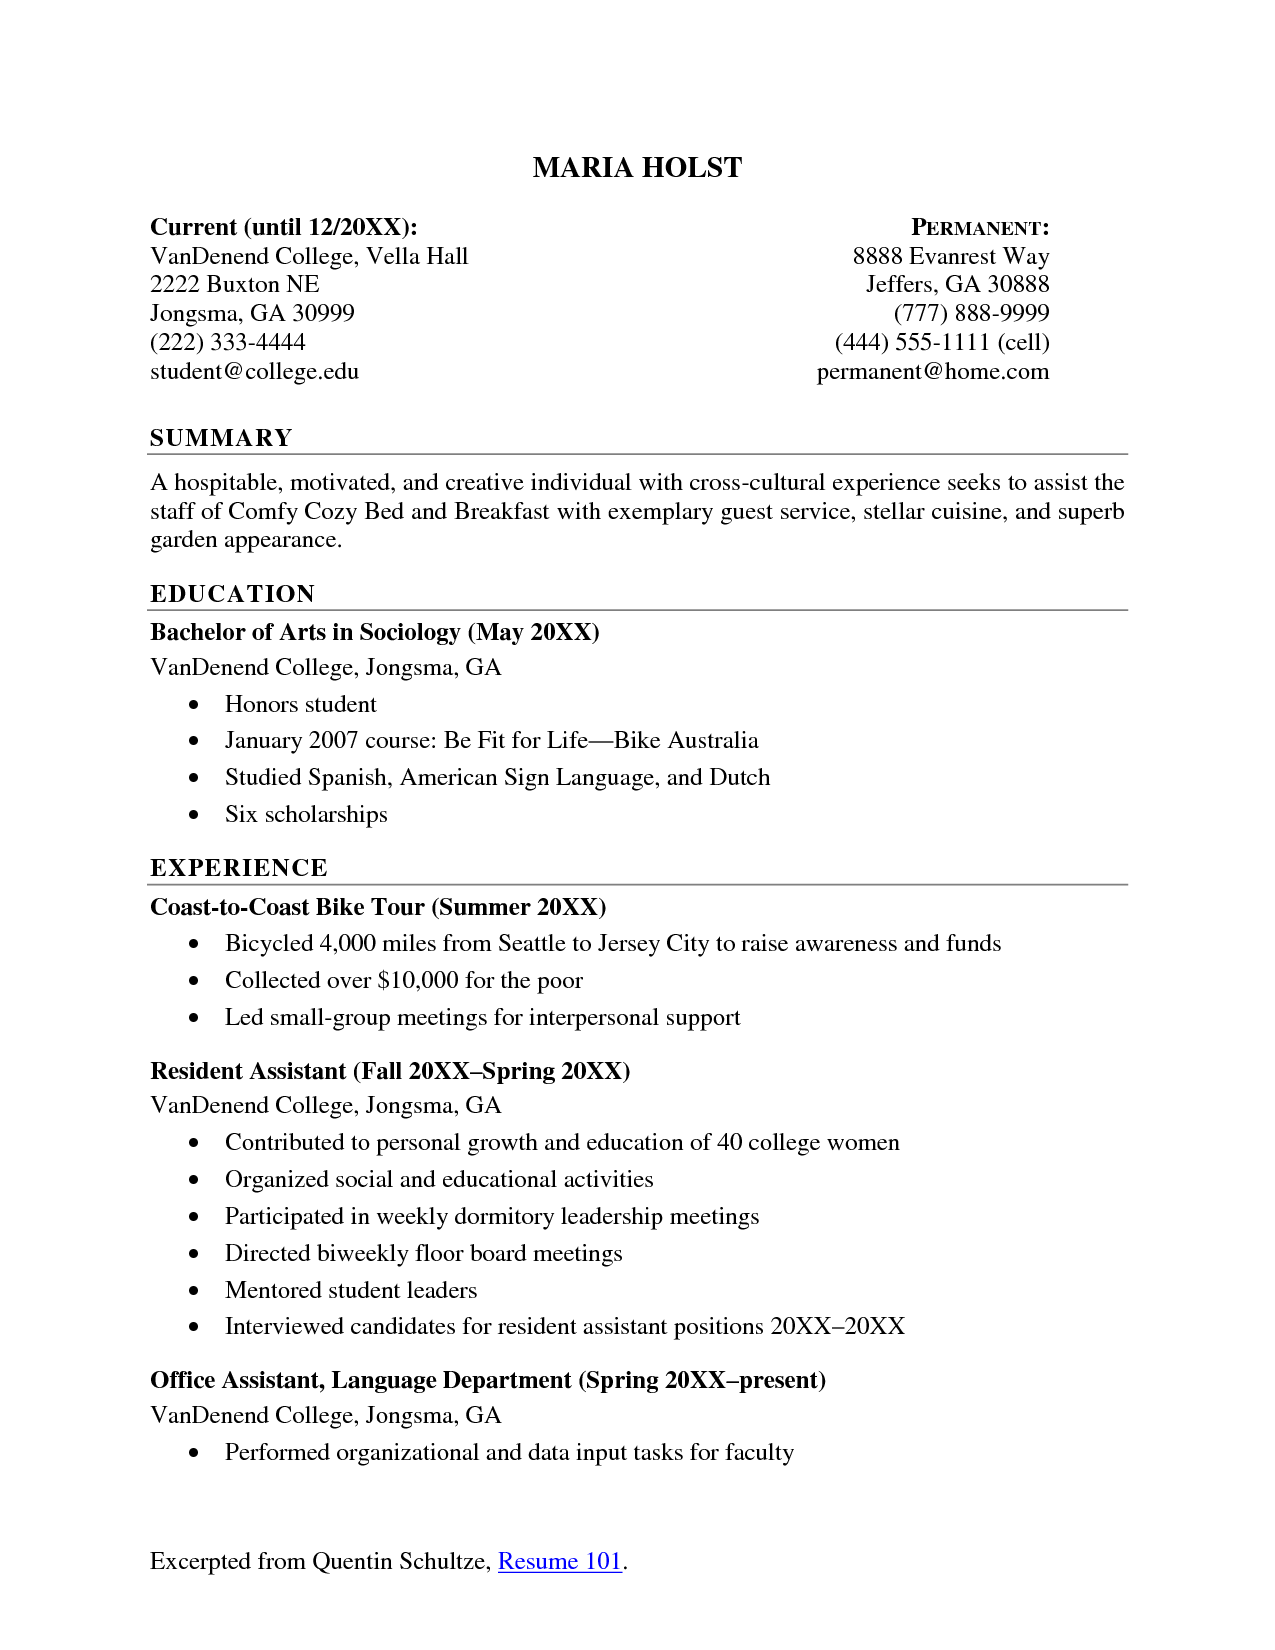 Resume Format College Student Sample Resume For College Student Supermamanscom  Httpwww